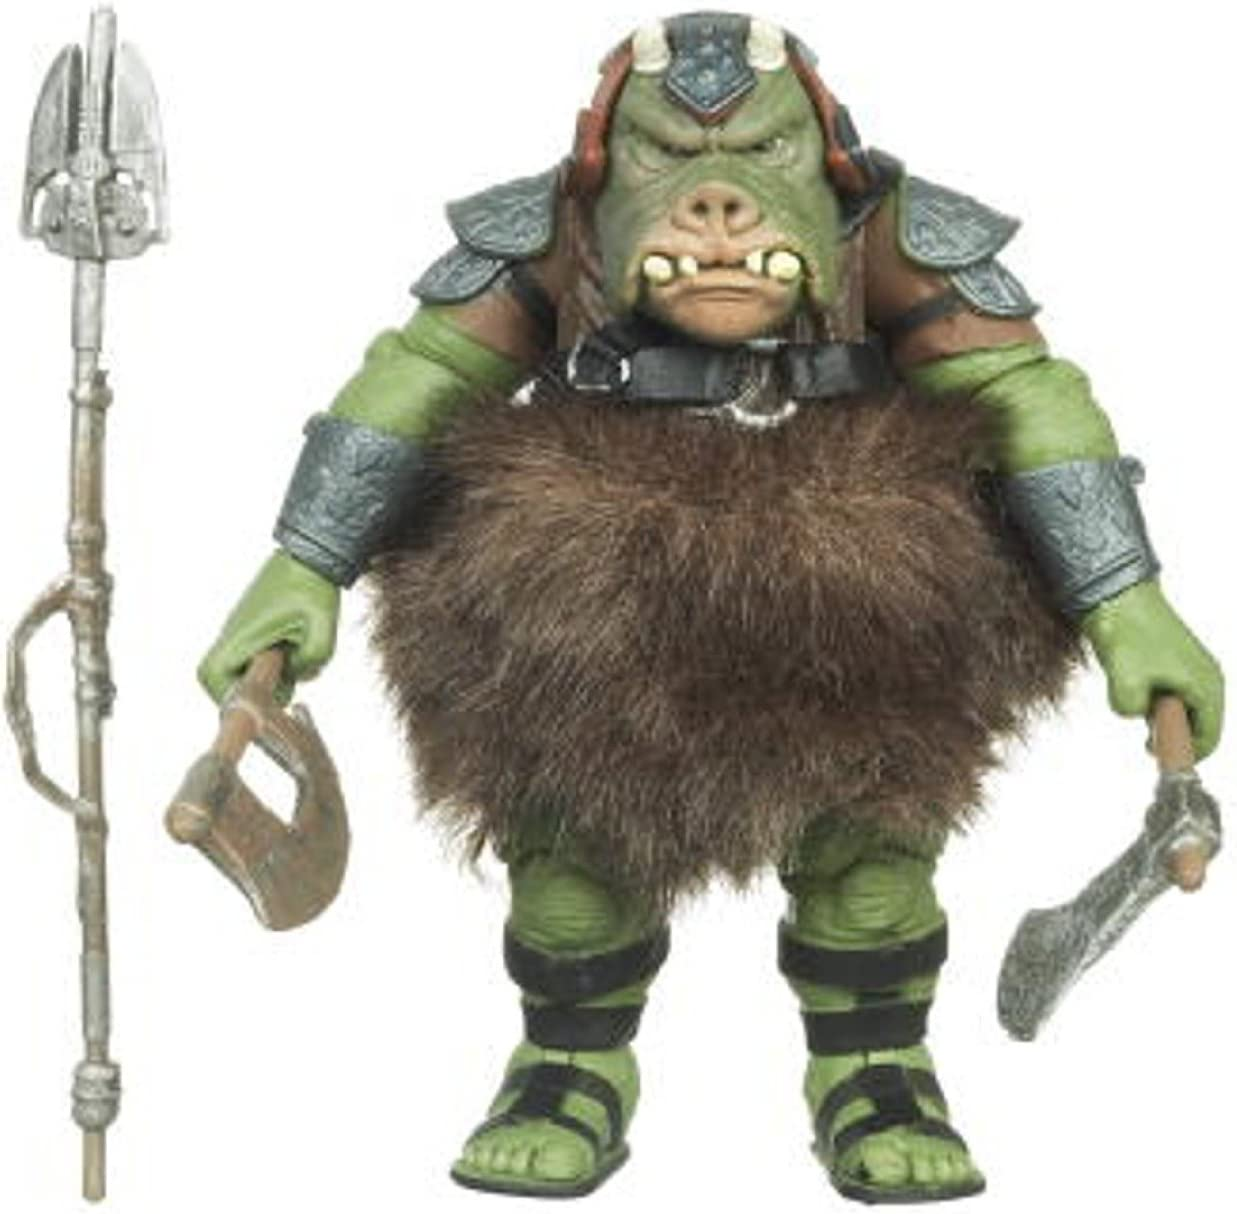 STAR WARS VINTAGE COLLECTION ROTJ GAMORREAN GUARD 3 3//4 INCH FIGURE EXCLUSIVE